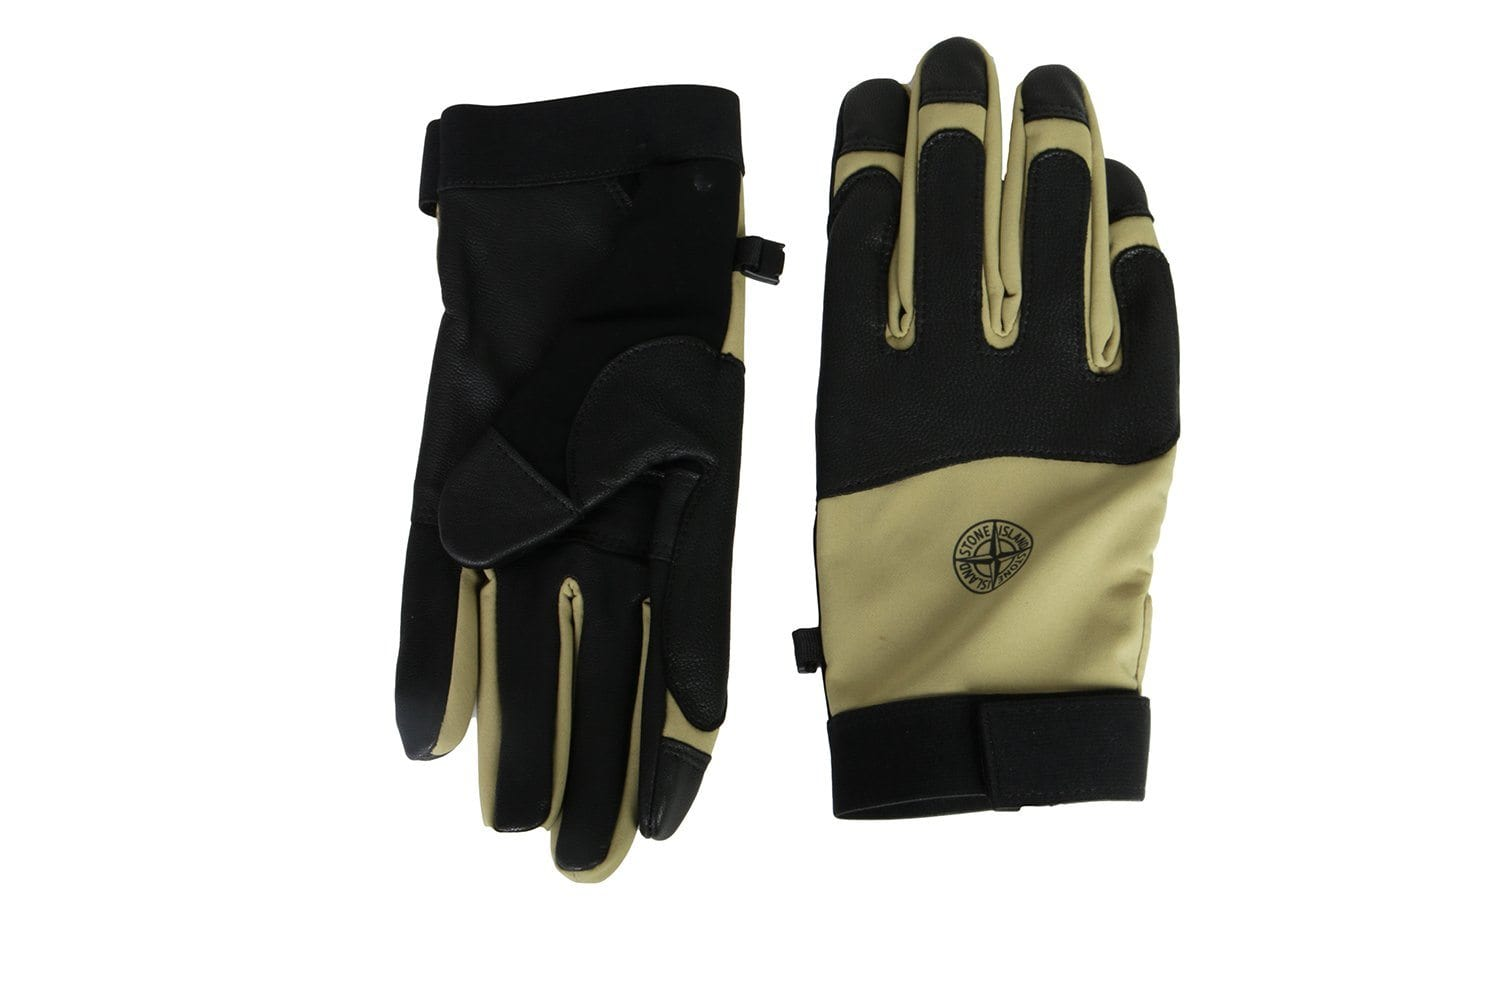 GLOVES - MO711592174 - V0034 ACCESSORIES STONE ISLAND